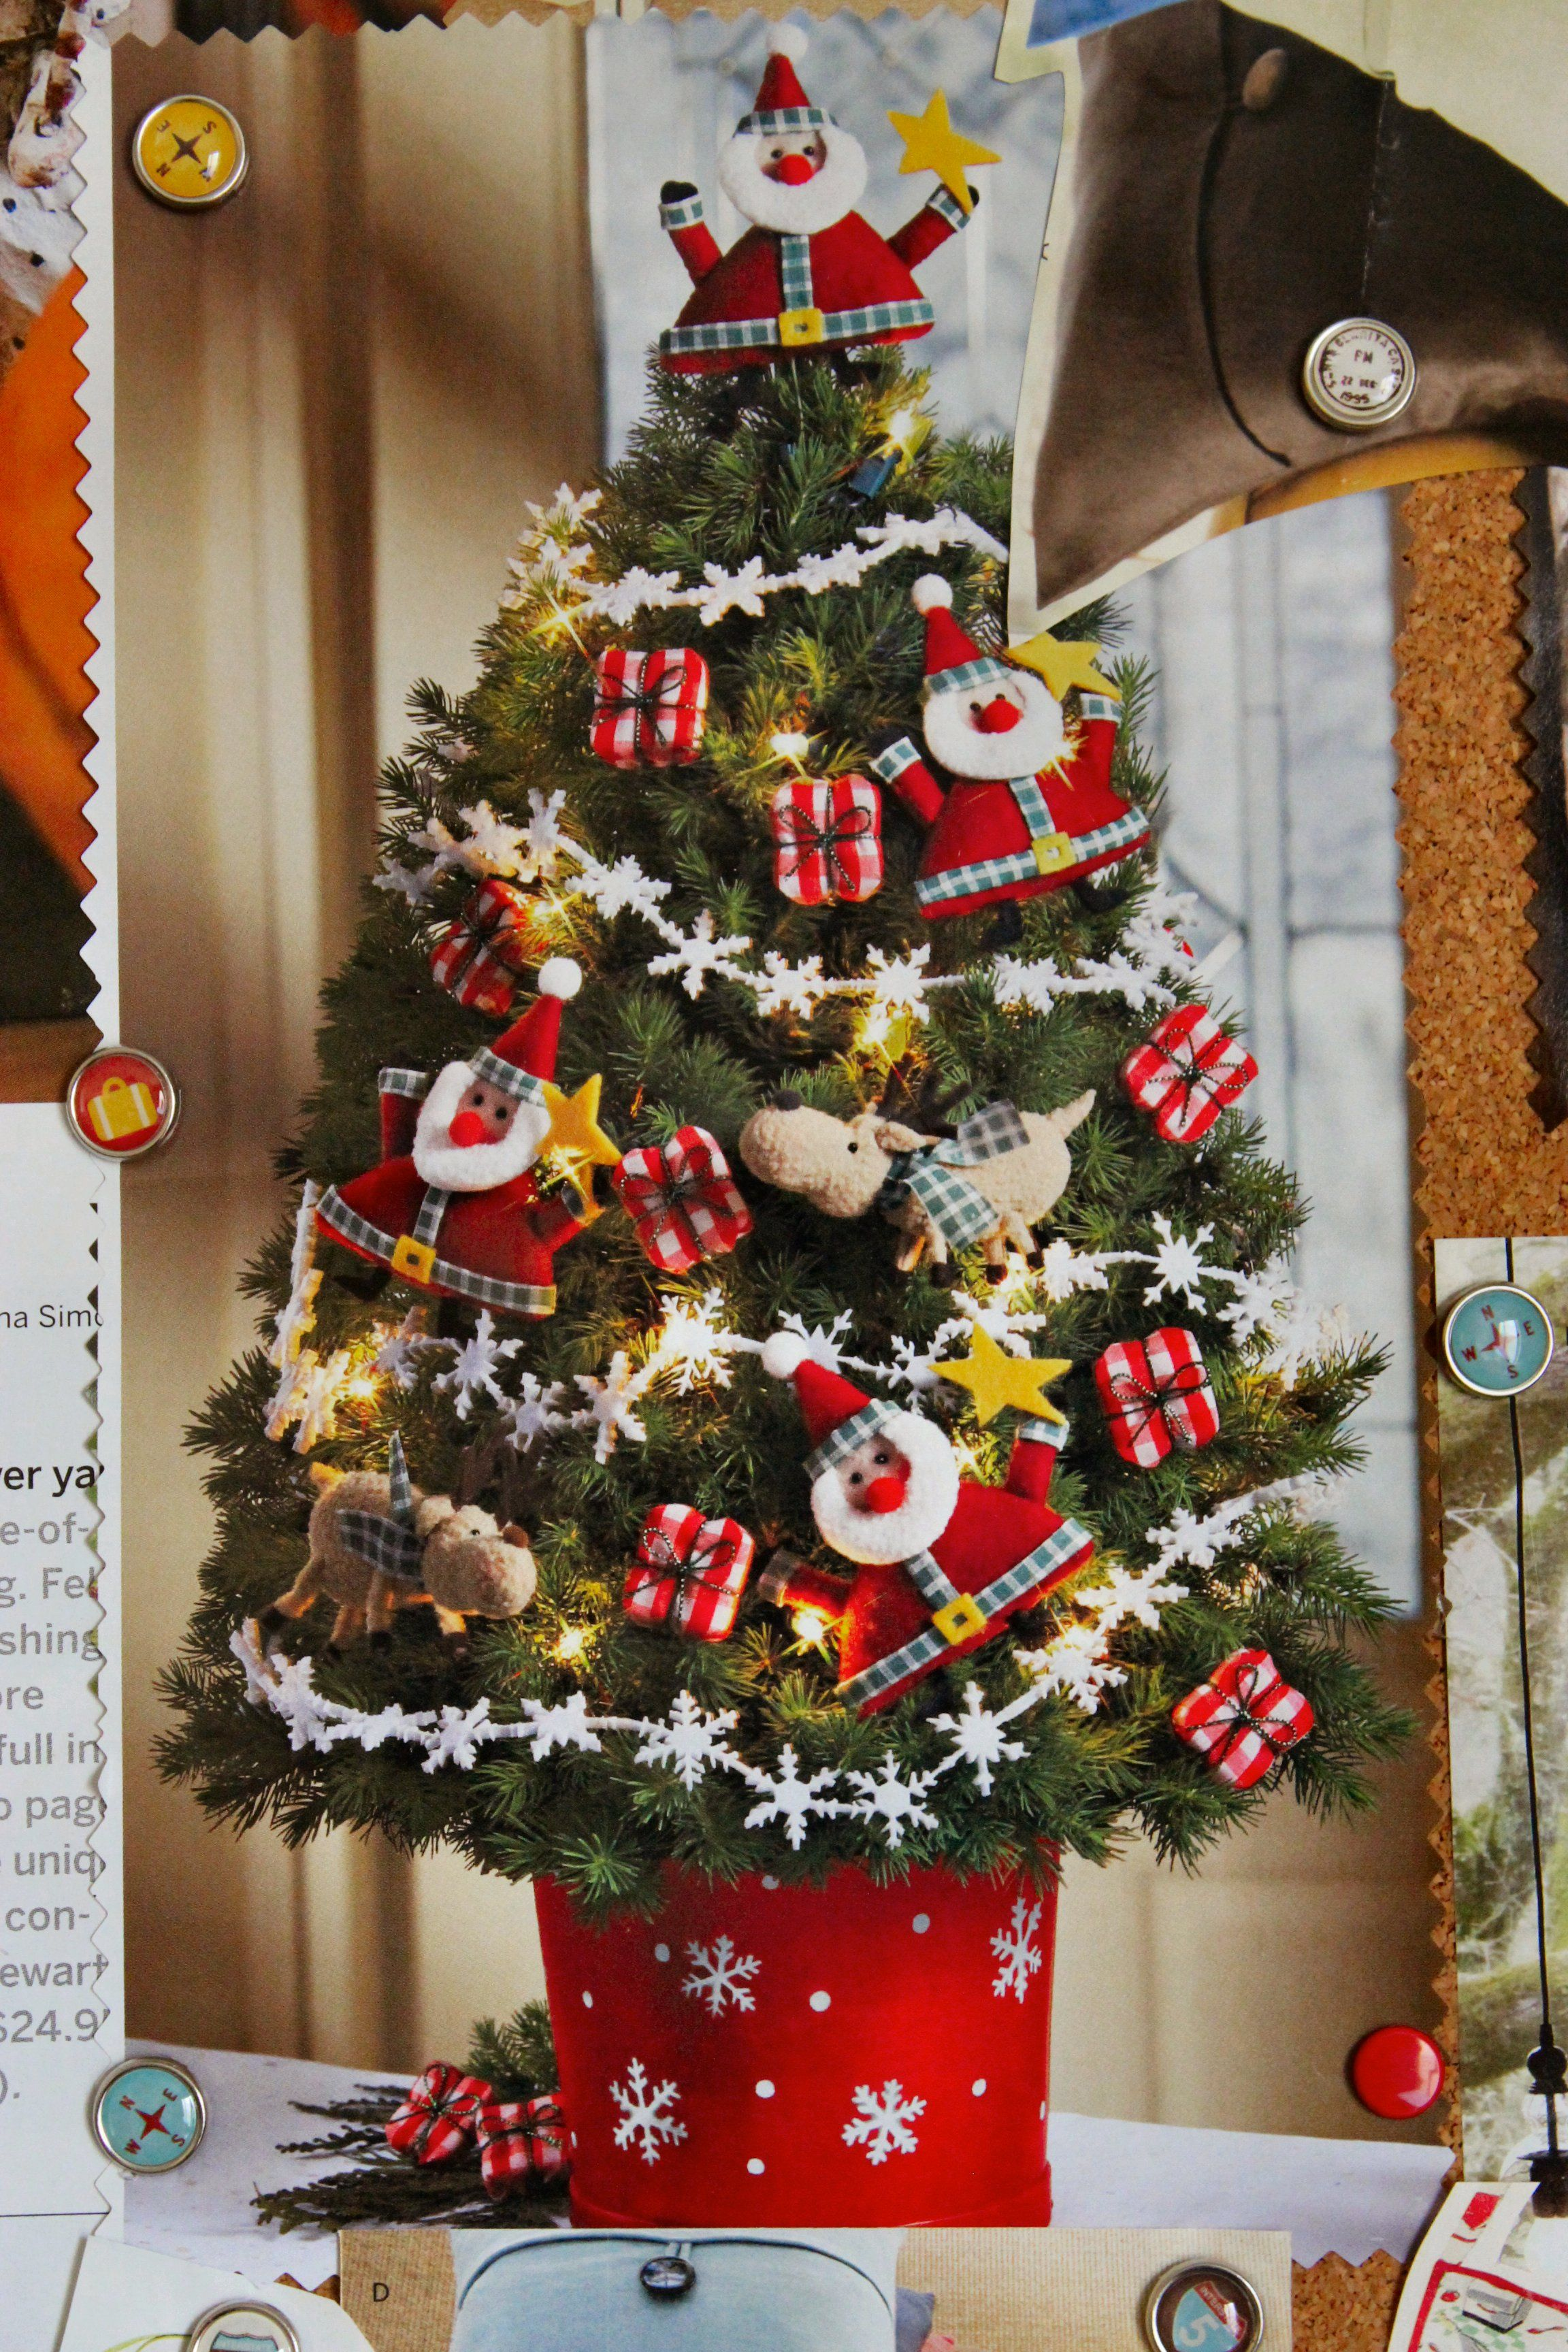 1000+ images about Xmas Tree on Pinterest | Christmas trees ...